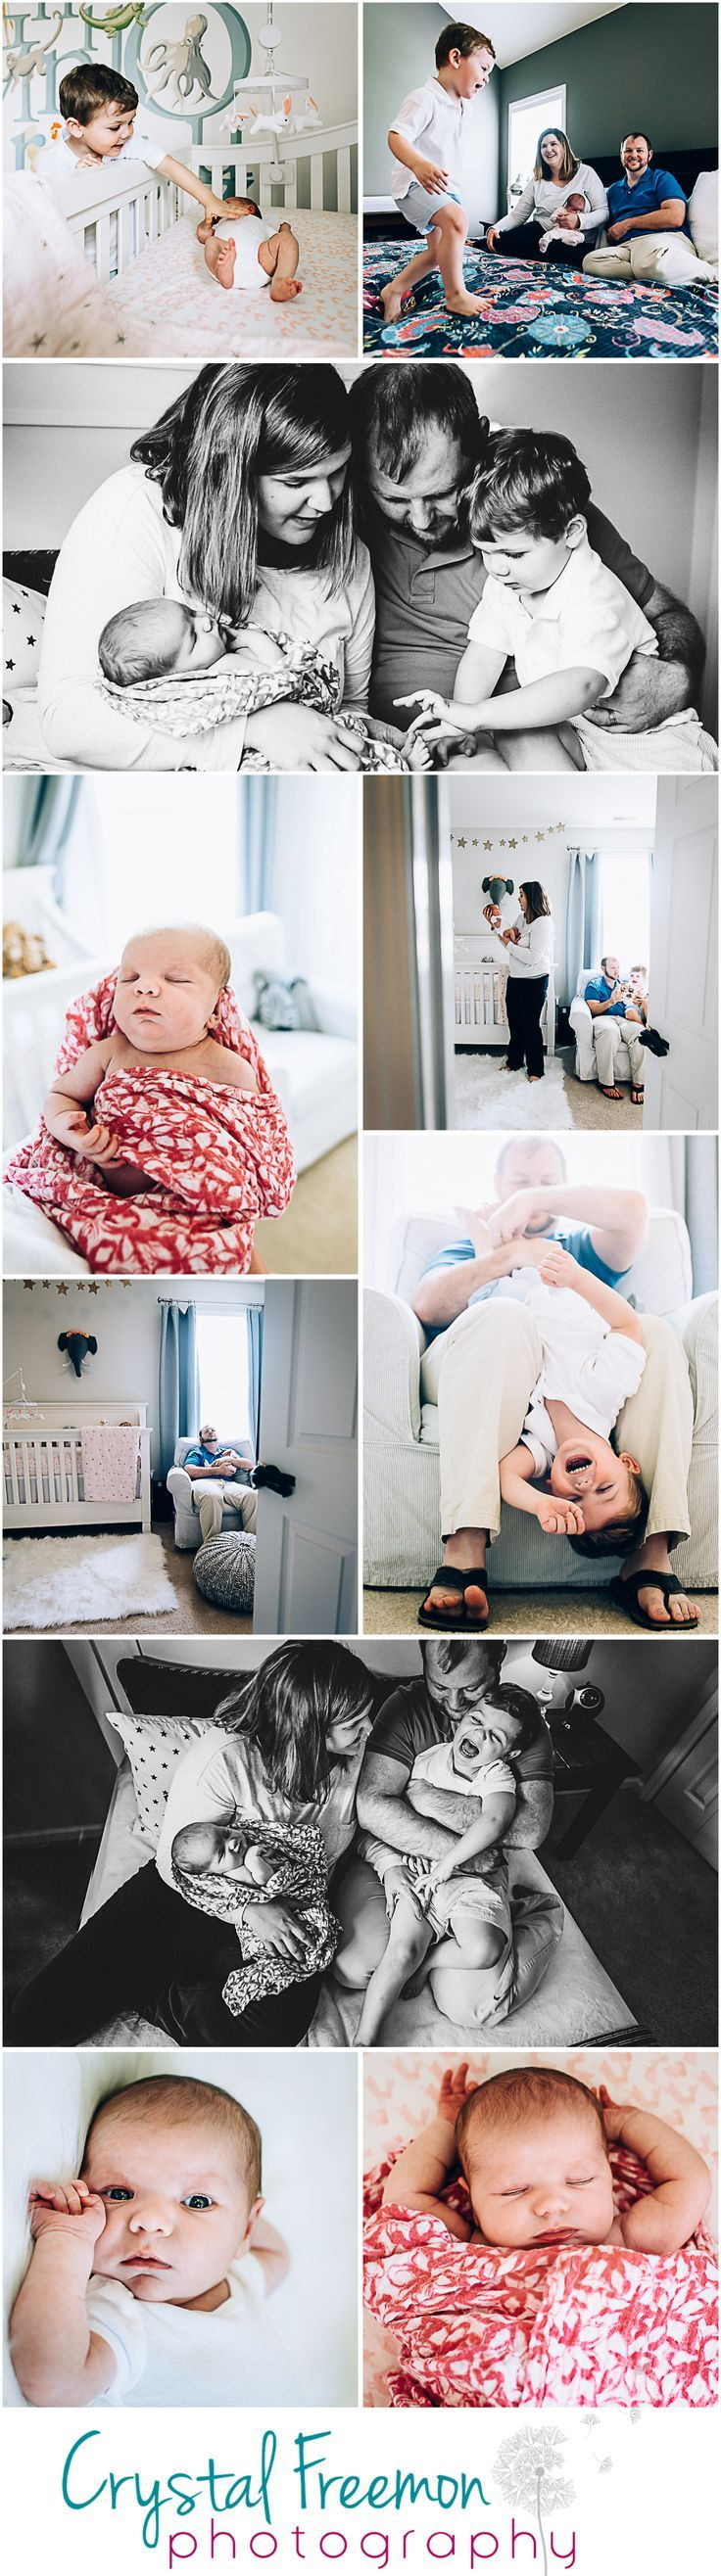 Lifestyle Newborn Portrait session with baby girl and her three year old big brother. Lots of photos of giggles, love and candid moments in the nursery & bedroom. Family of 4 at home photography session.  Alphabet Wall Decals or Stickers for Nursery. Baby Girl animal Nursery